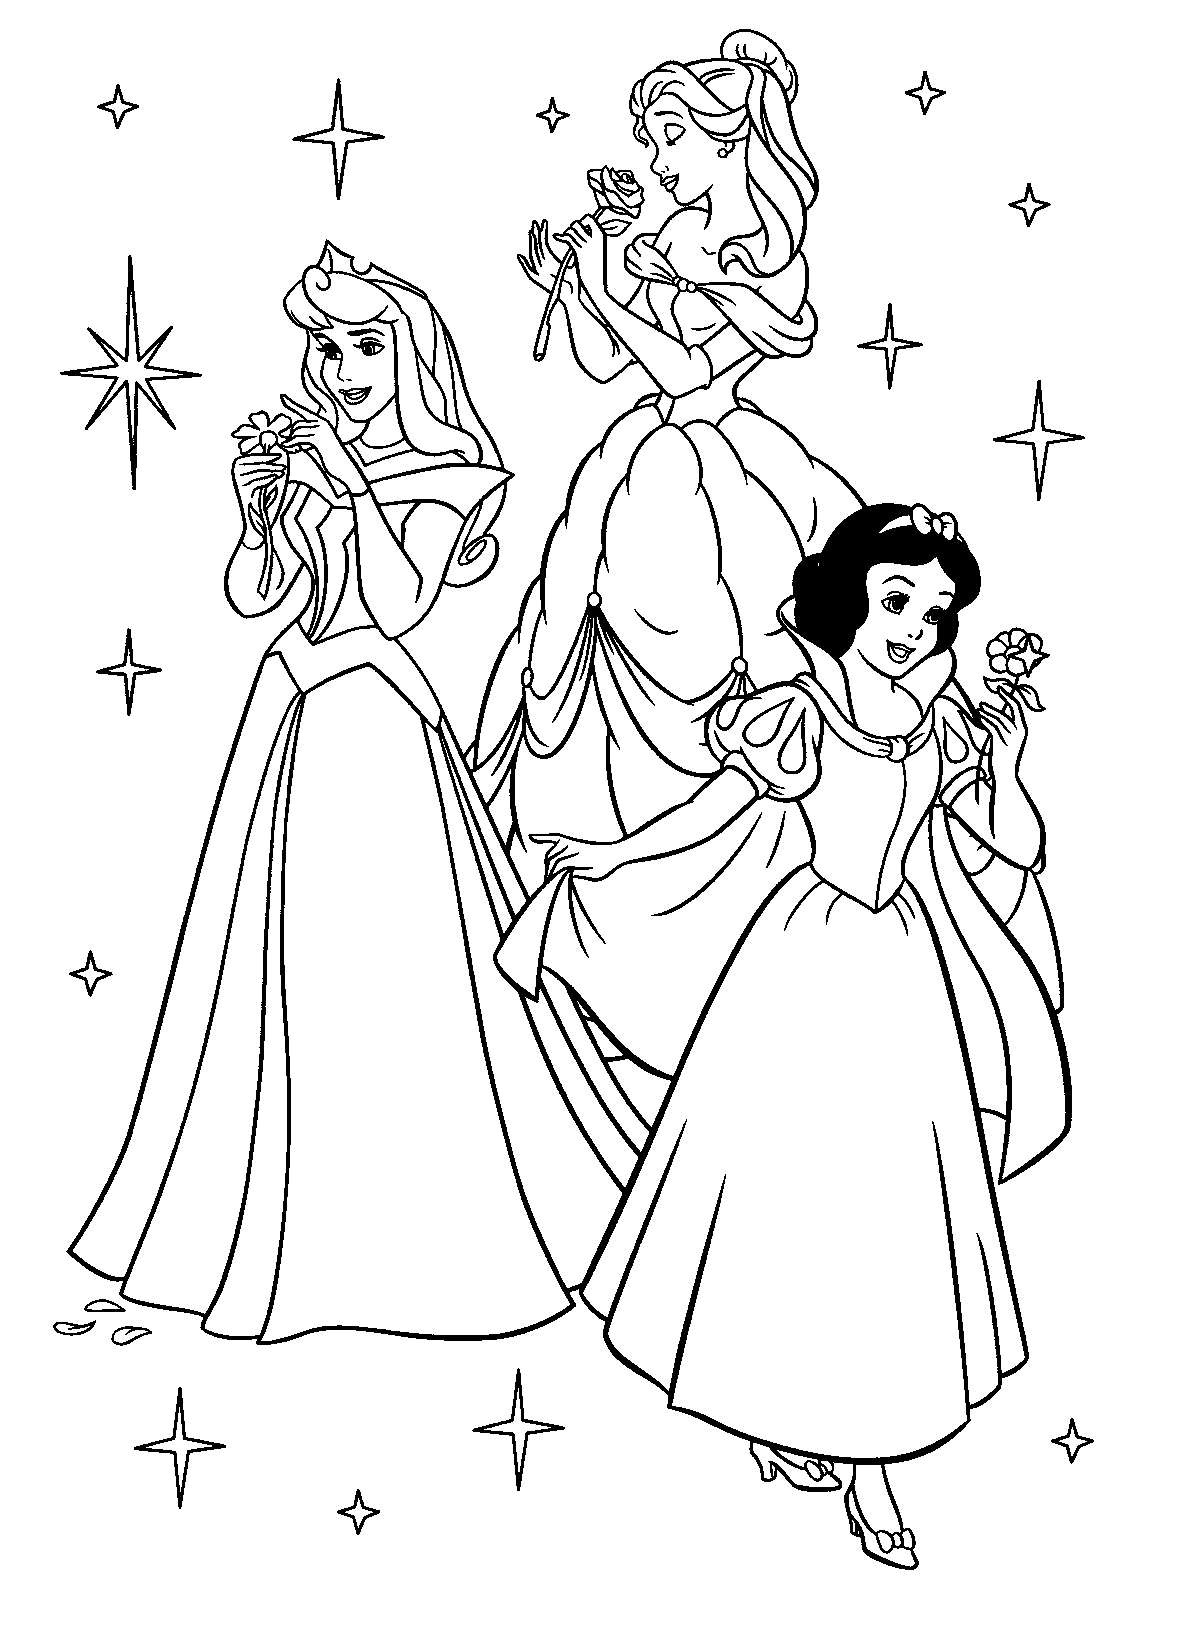 coloring pages of disney princesses - photo#2